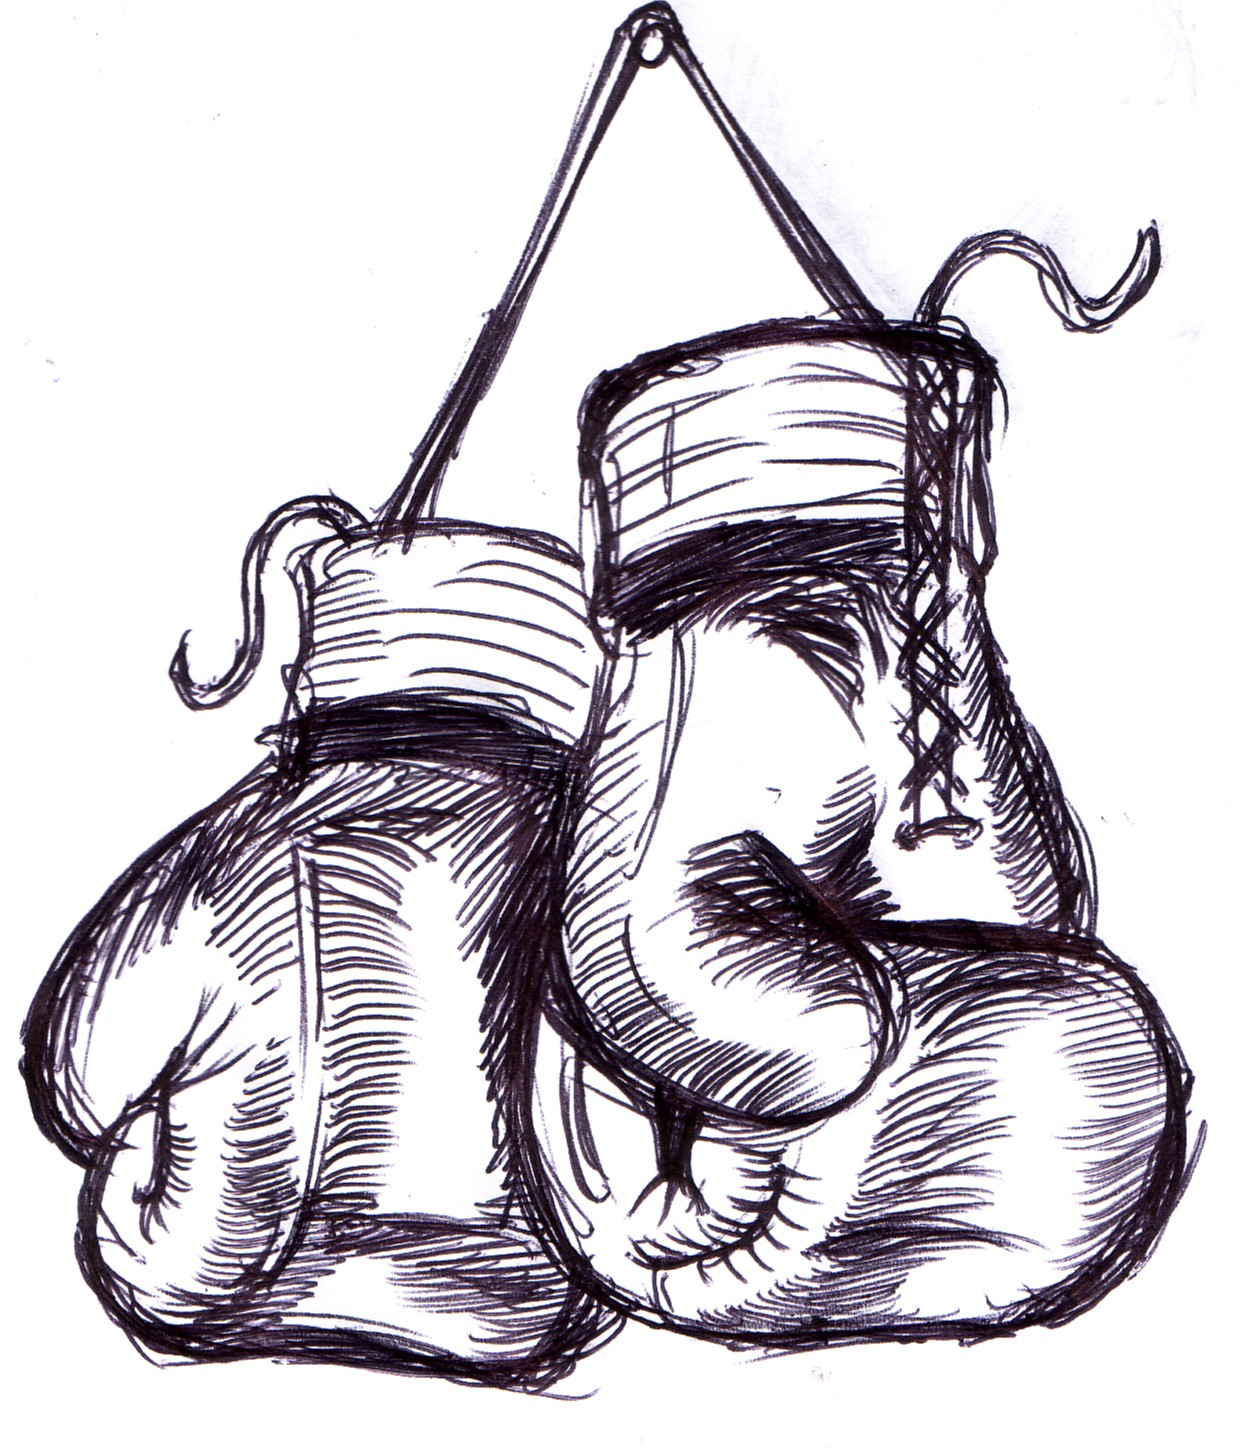 Utah MMA And Boxing : Gabriel Chairez Wins His Pro Boxing